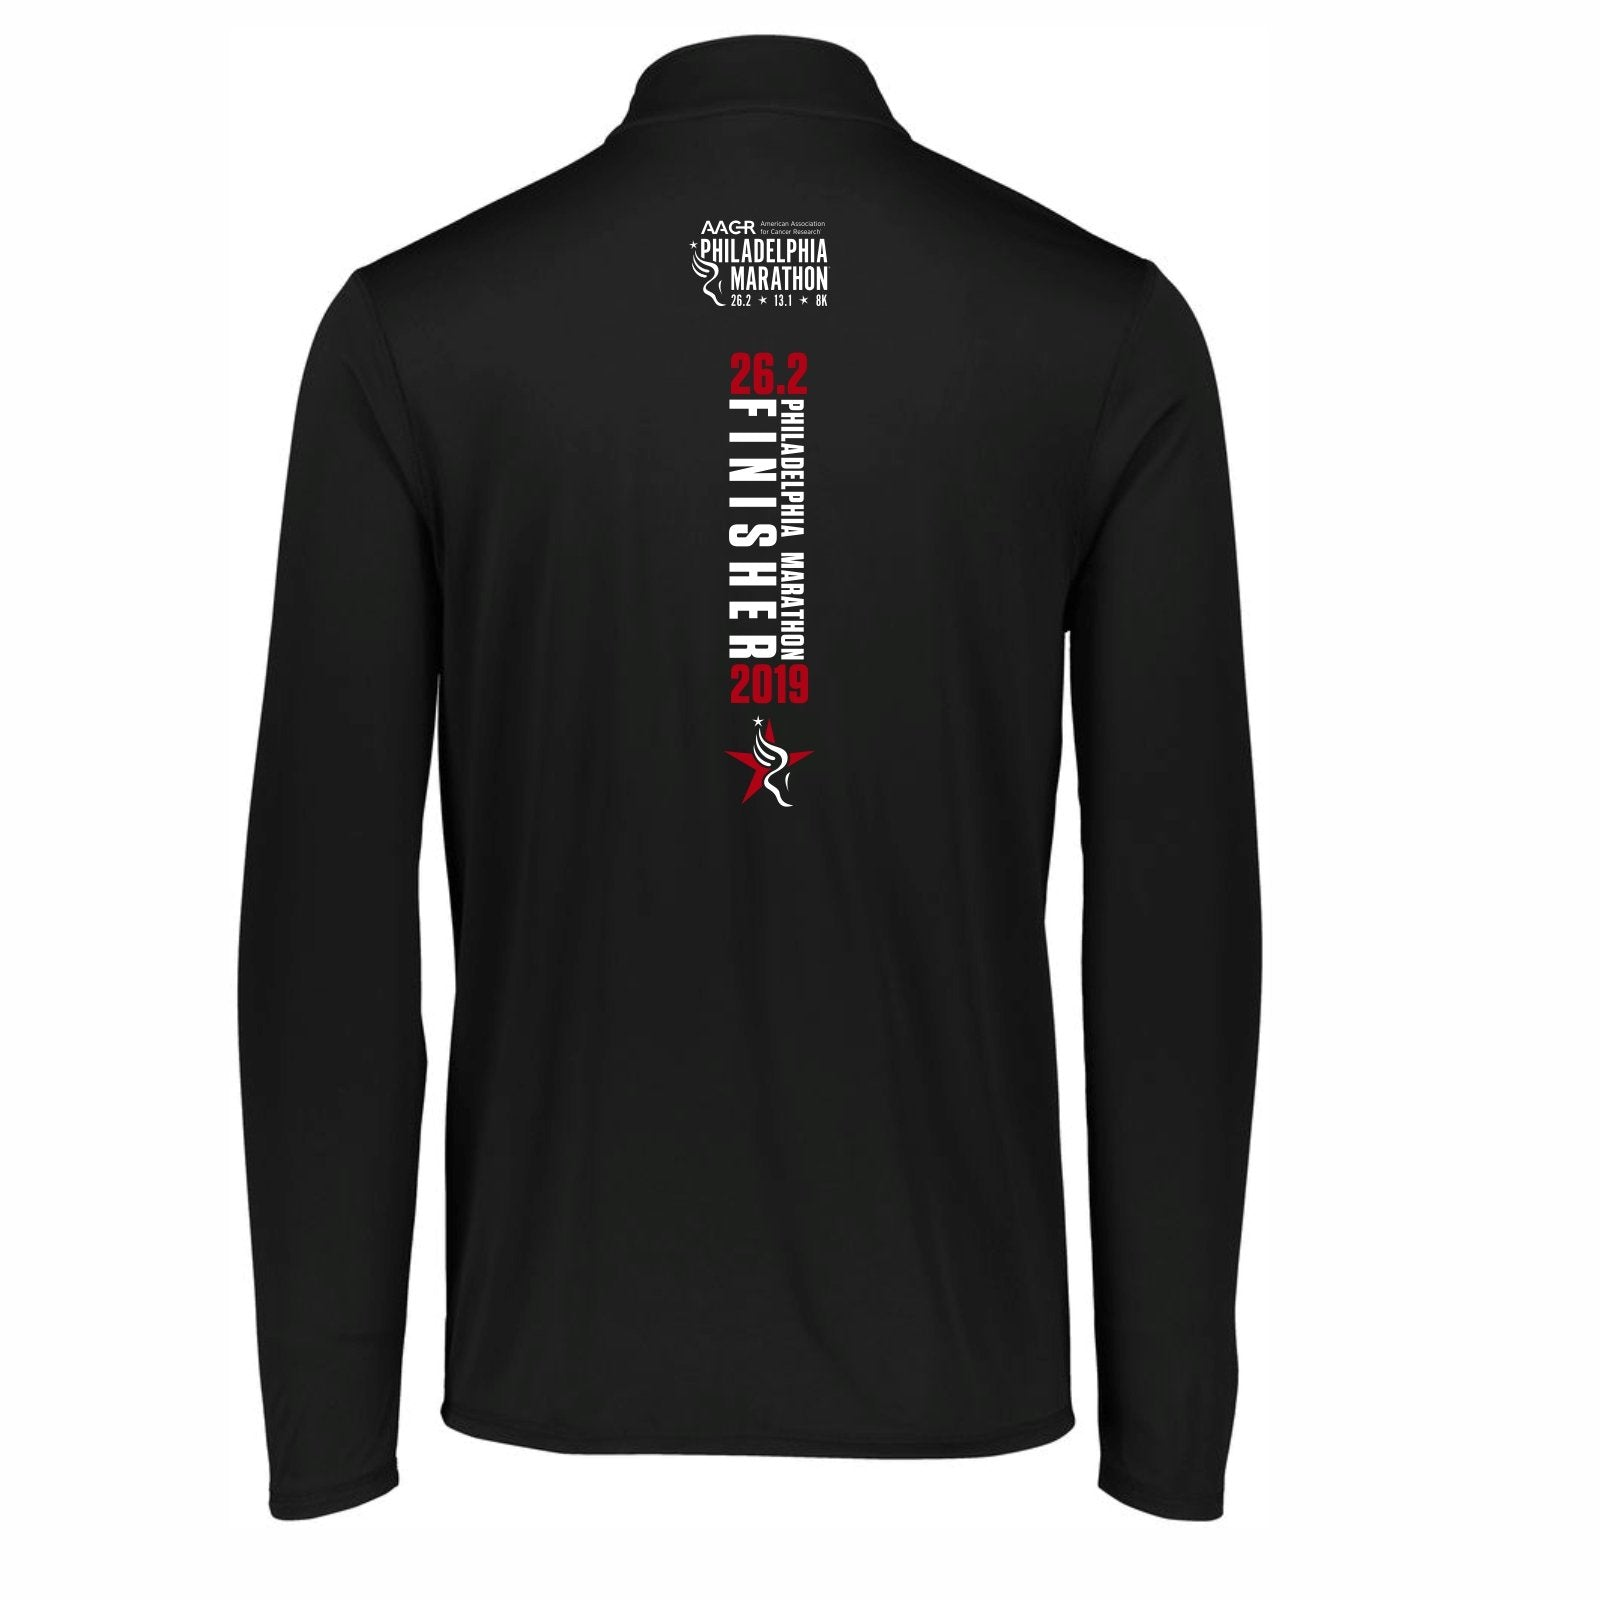 Men's 'Finisher 2019' Tech 1/4 Zip -Black - AACR Philadelphia Marathon